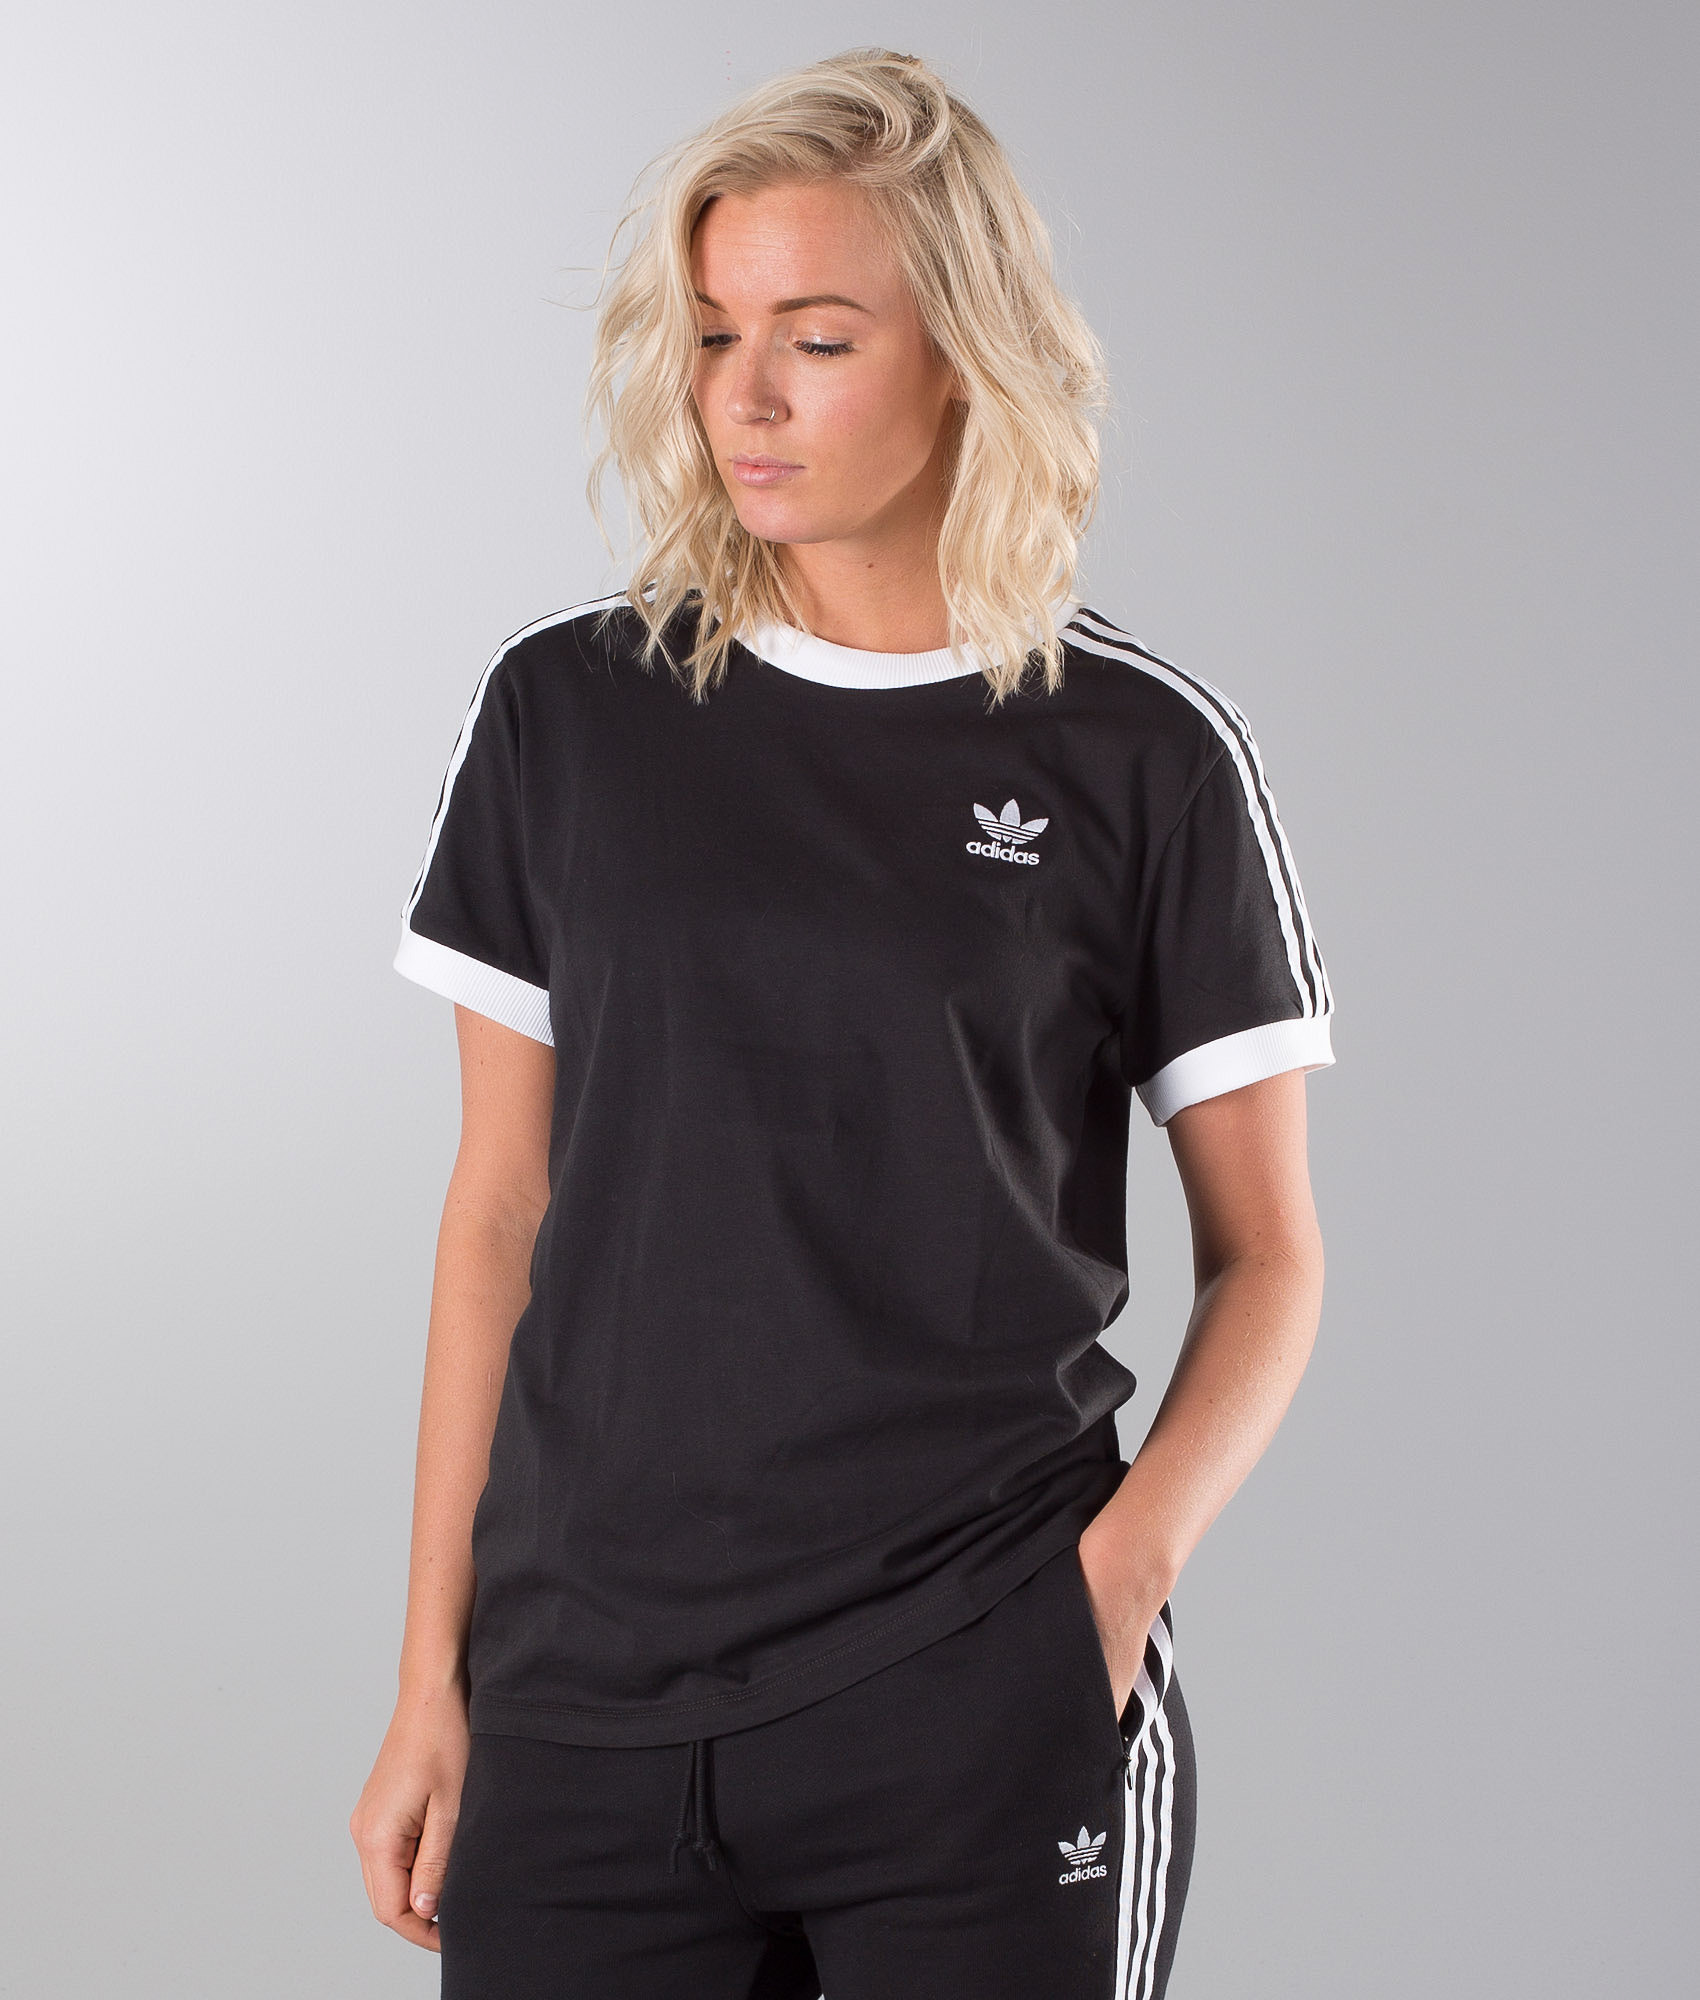 ff733b47f28 Adidas Originals 3 Stripes T-shirt Black - Ridestore.com